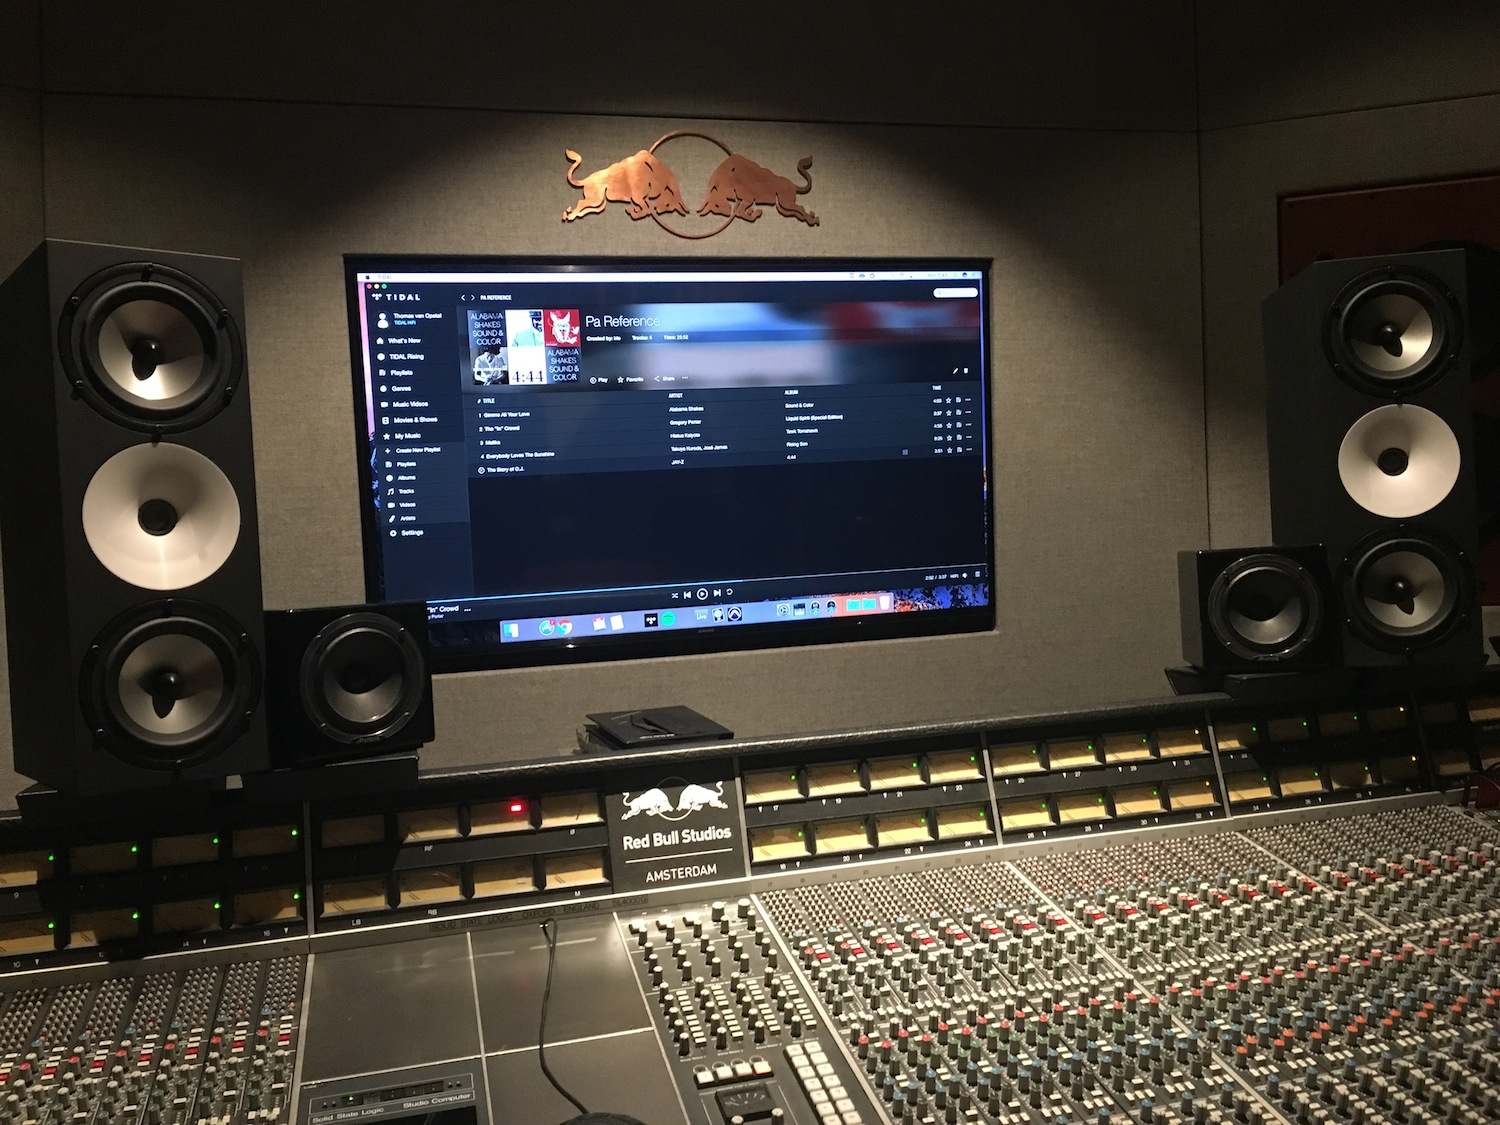 Red-Bull-Studios-Amsterdam-control-room-Q-factory-The-Wong-Janice-music-producer-cellist.jpg